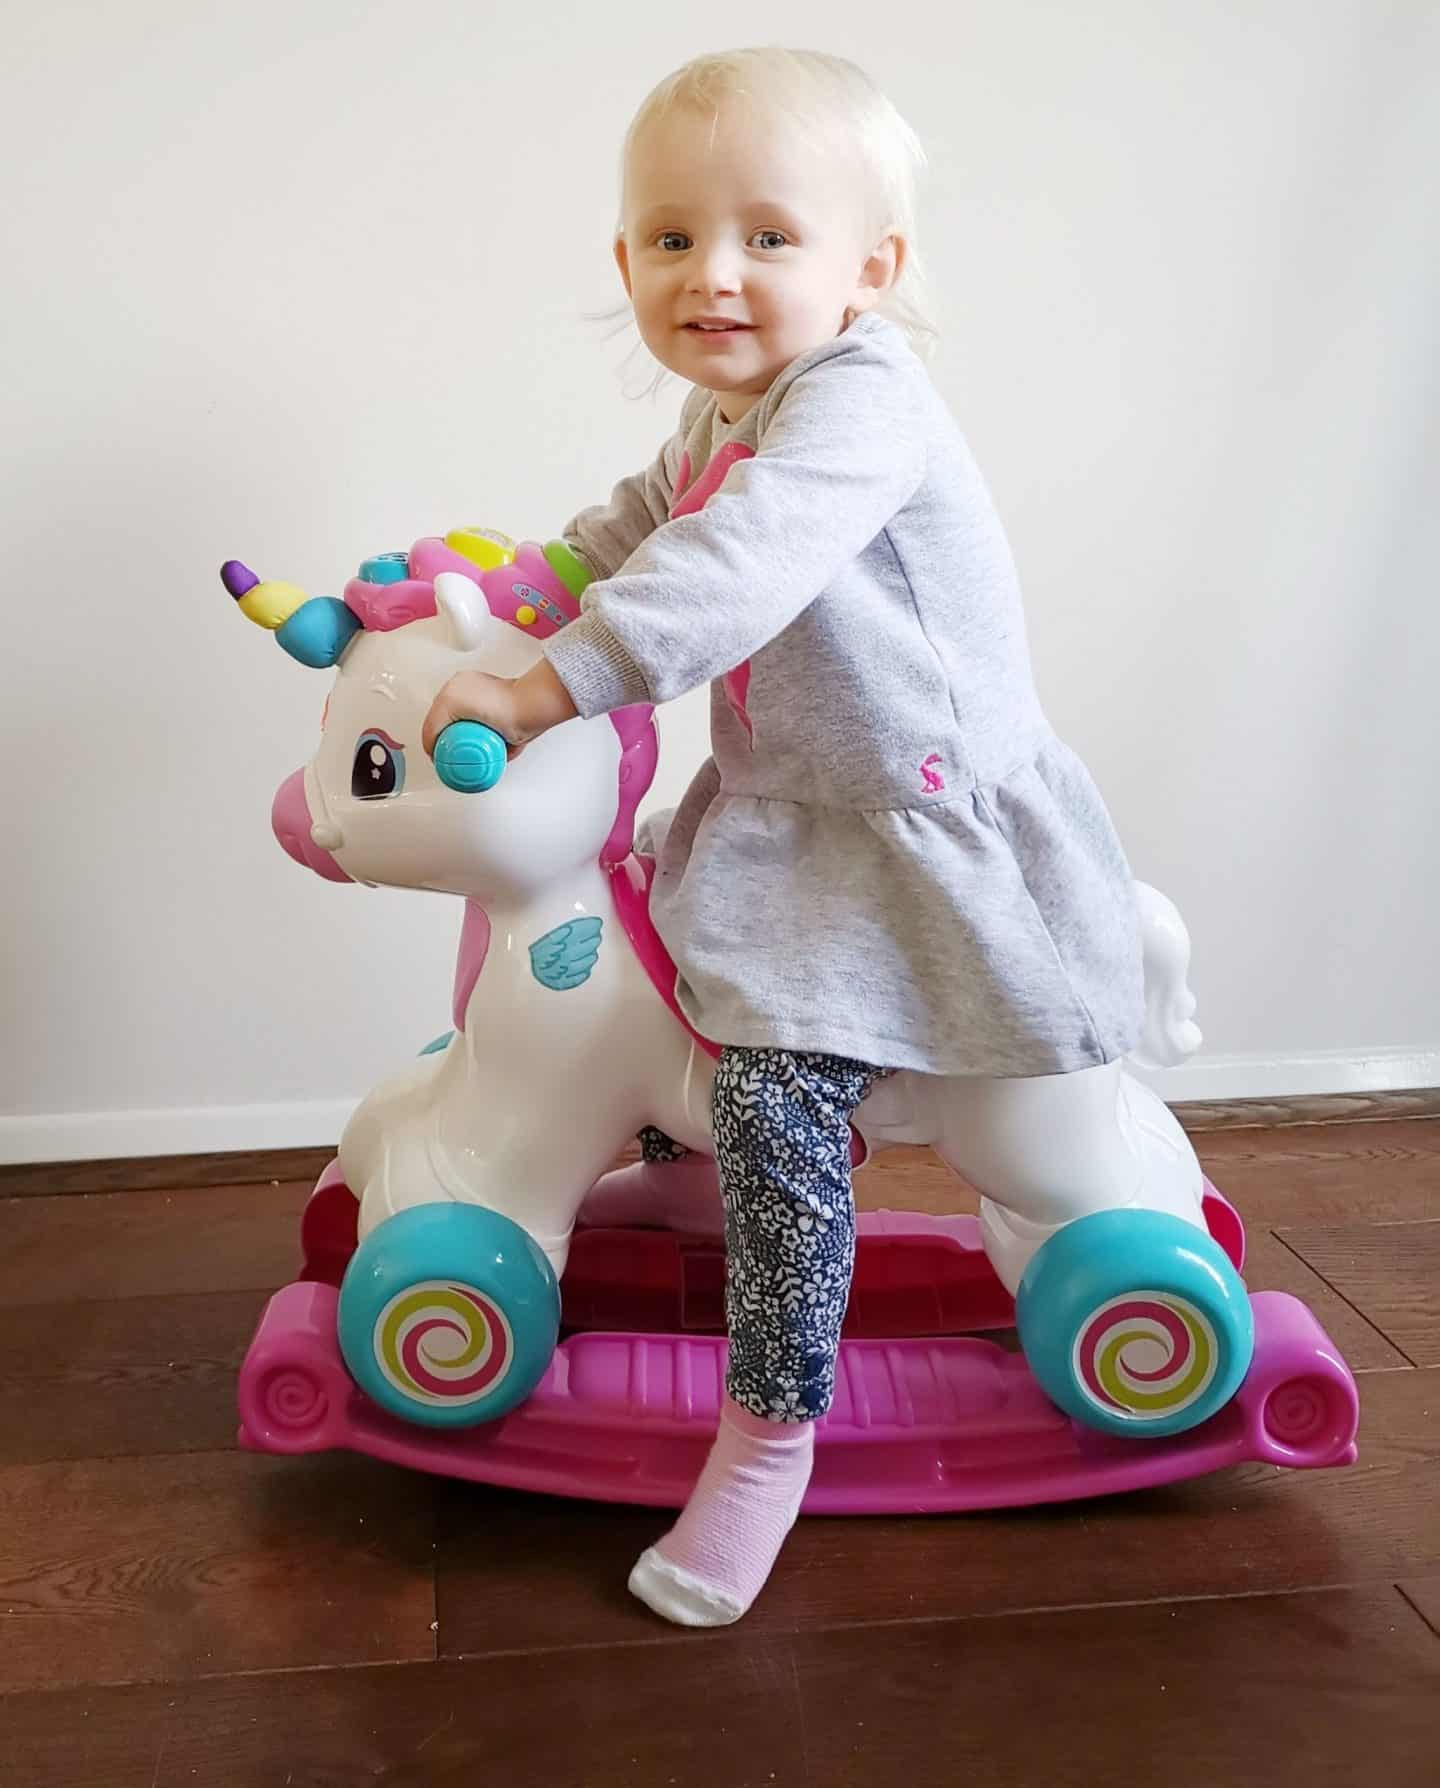 Toy review: Baby Clementoni Interactive Ride On Unicorn